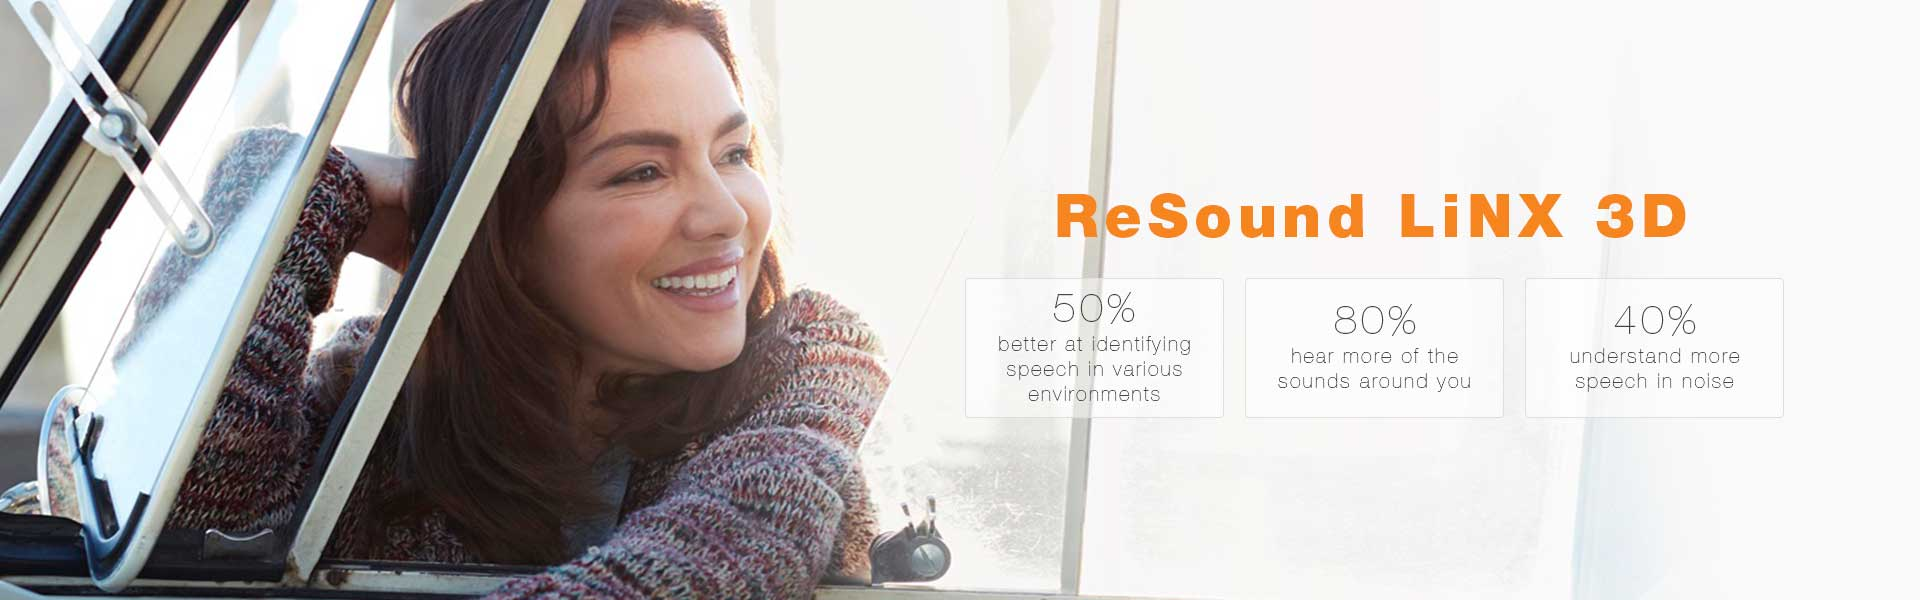 ReSound LiNX 3D - Opelika, AL - East Alabama Ear, Nose & Throat P.C.